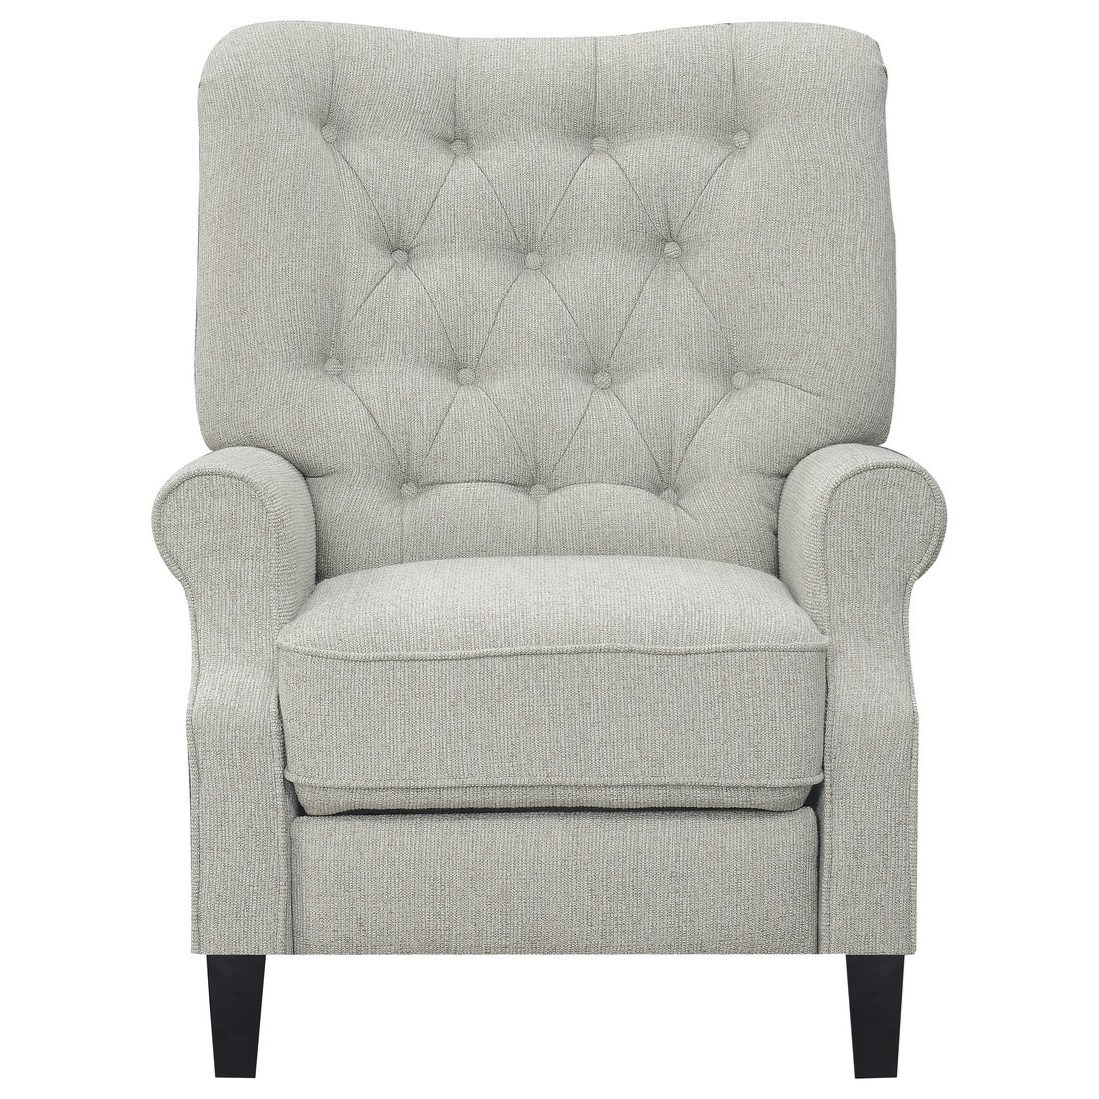 Waterford High Leg Reclining Chair by Emerald at Northeast Factory Direct